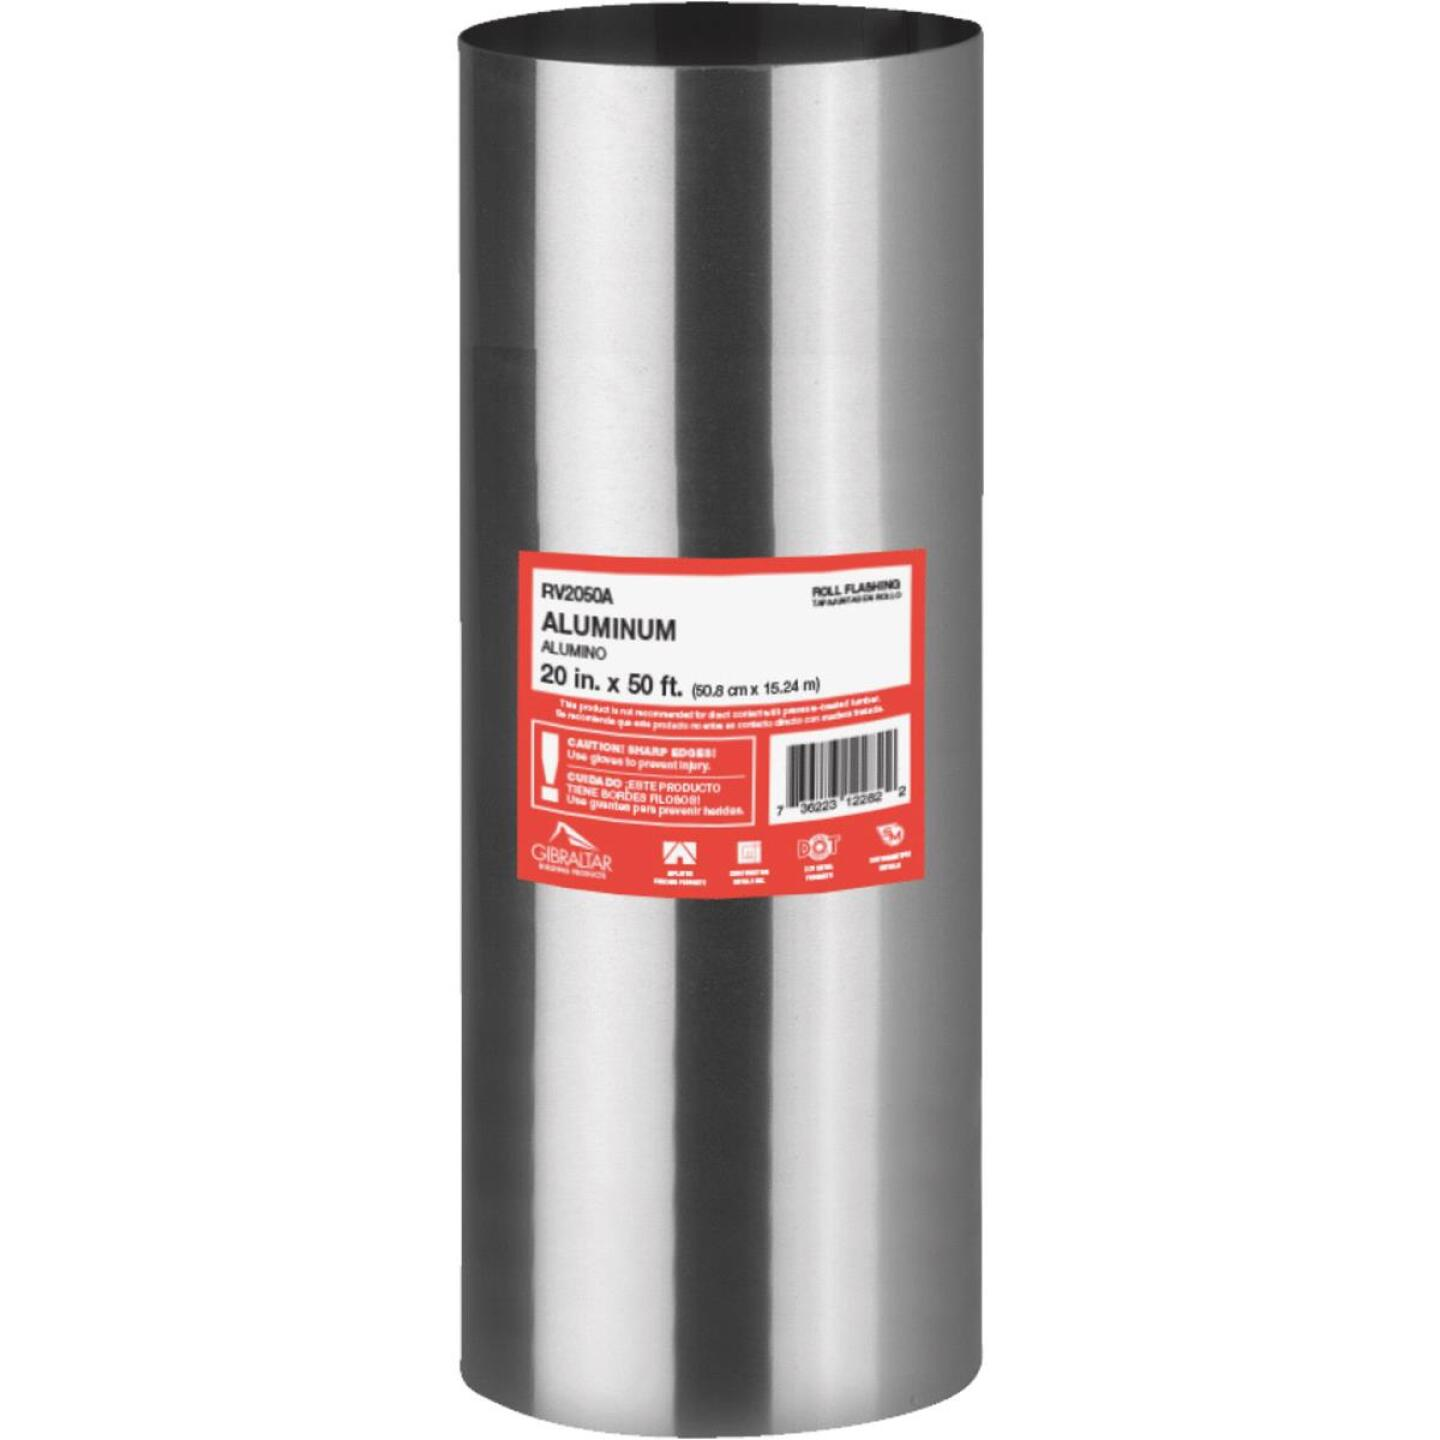 NorWesco 20 In. x 50 Ft. Mill Aluminum Roll Valley Flashing Image 1